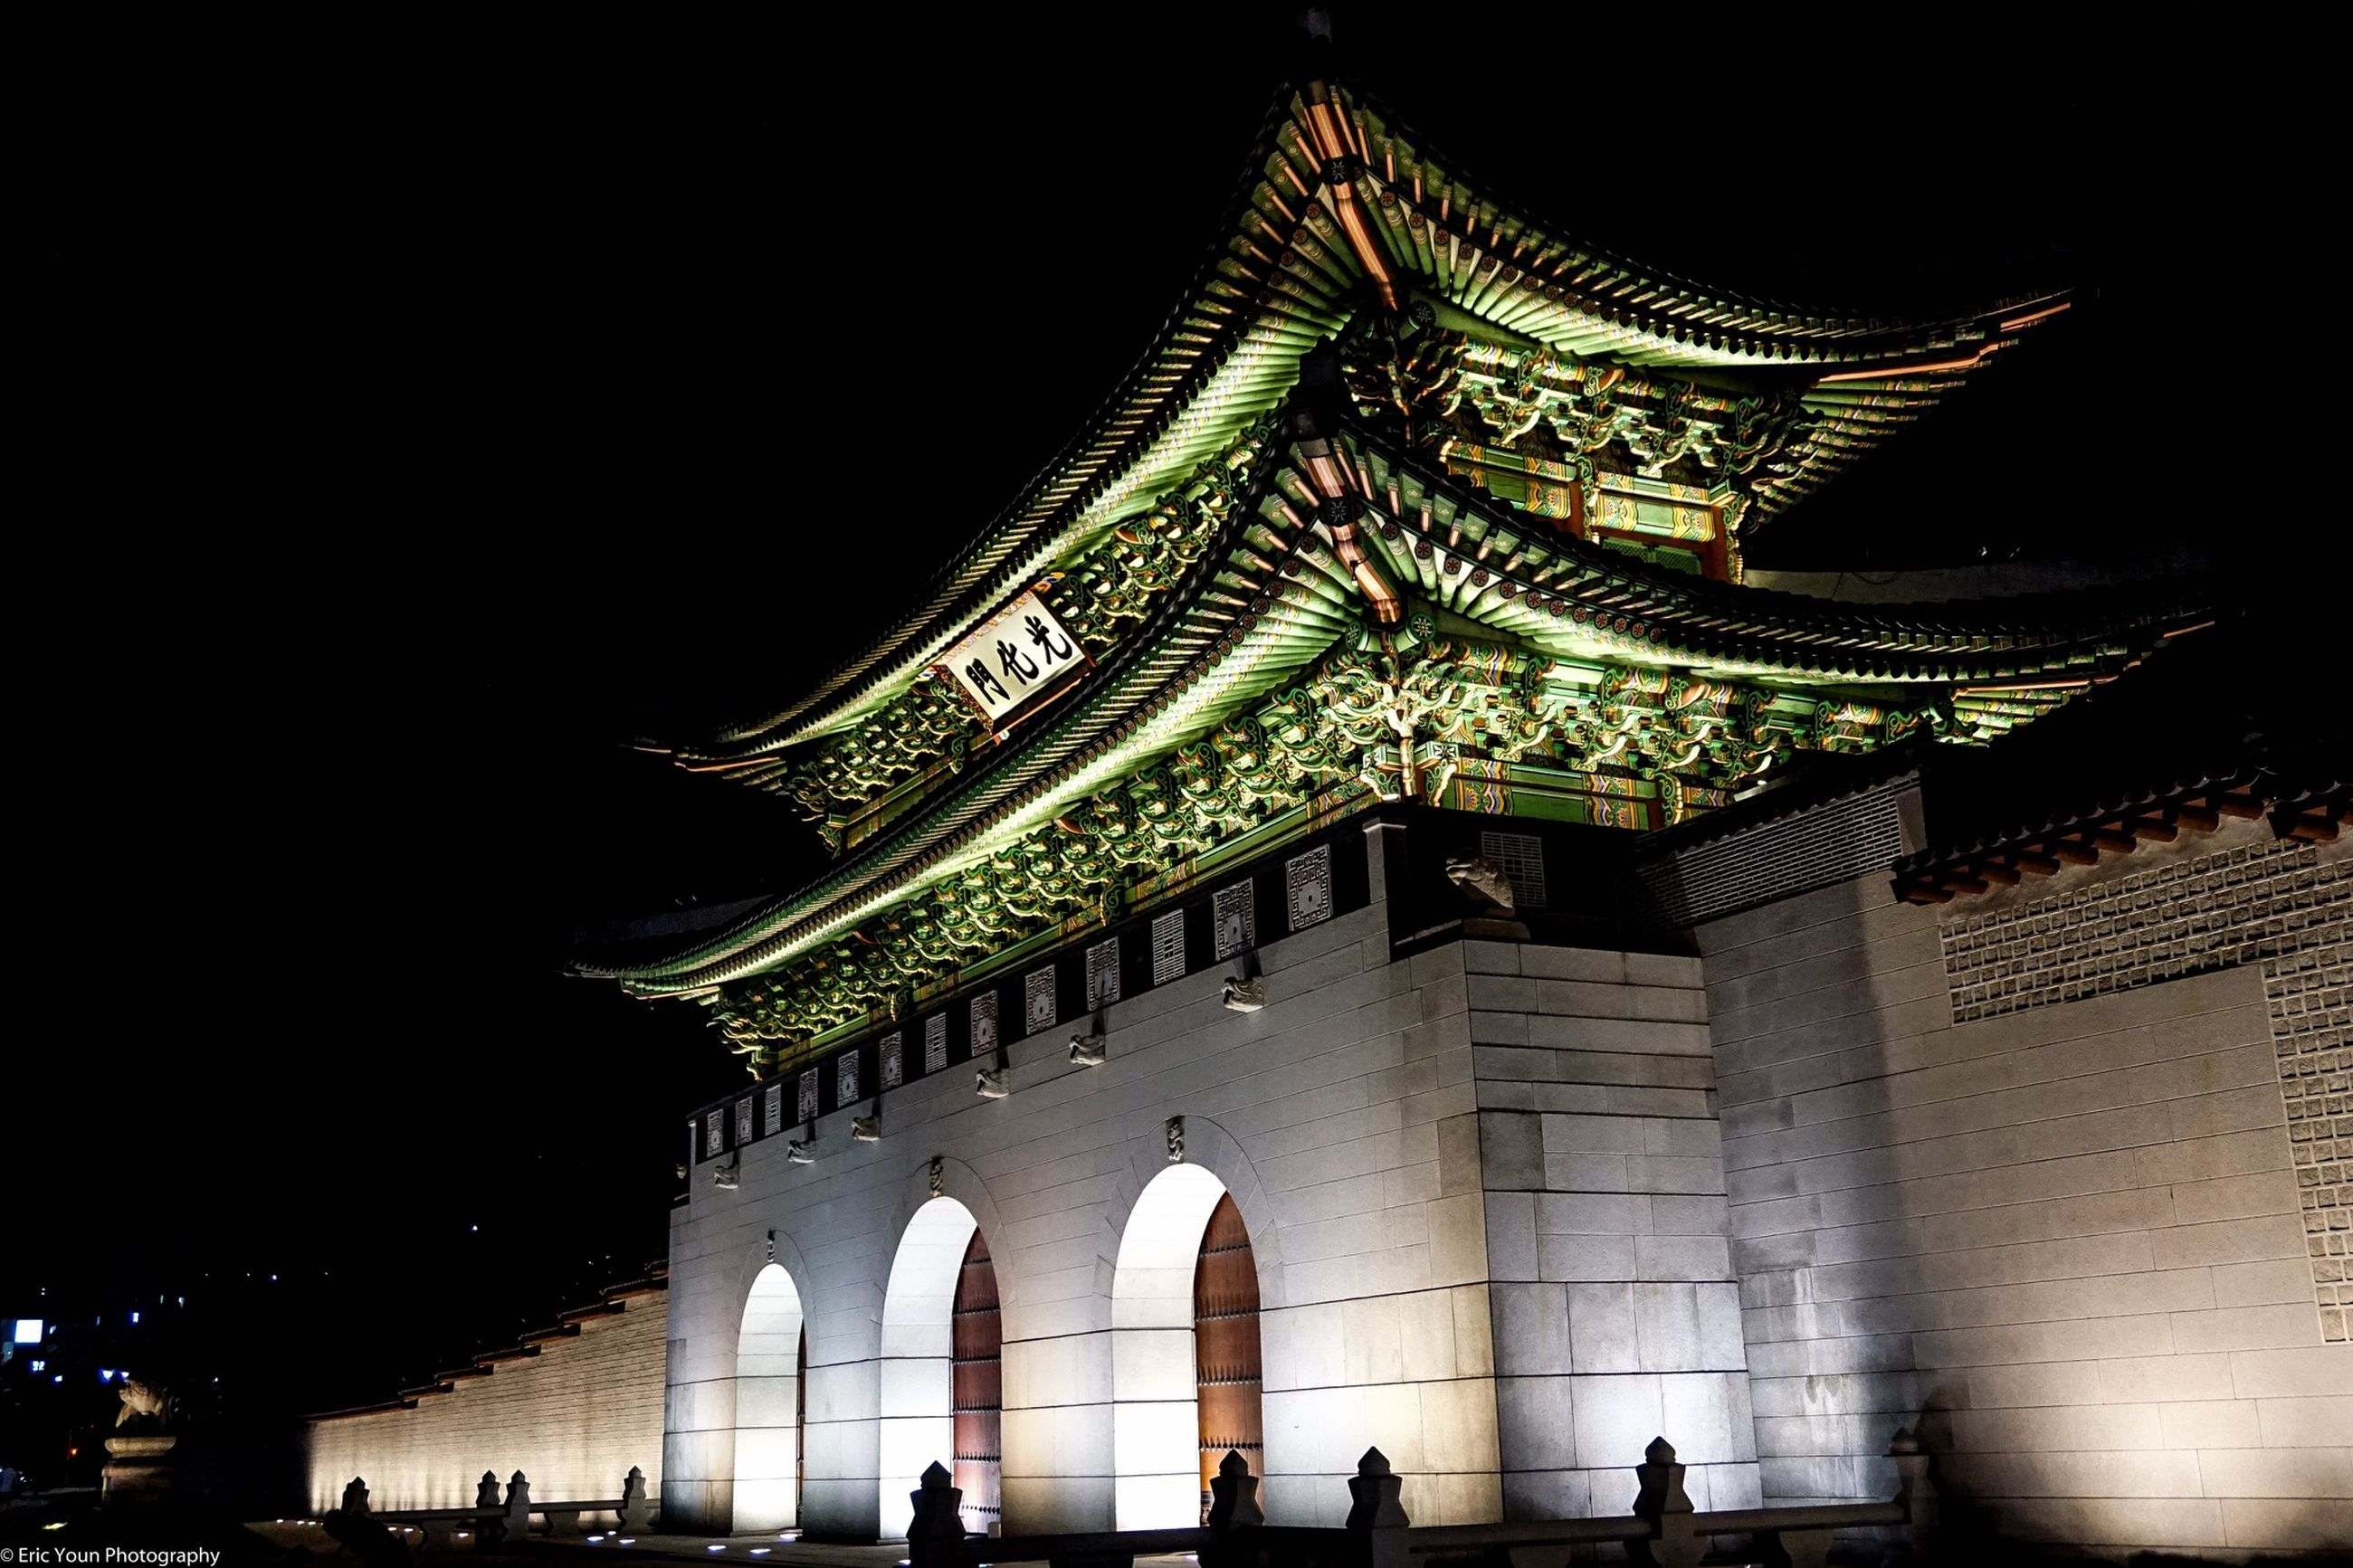 architecture, built structure, building exterior, night, large group of people, men, illuminated, famous place, travel destinations, low angle view, person, tourism, facade, city, travel, lifestyles, history, arch, tourist